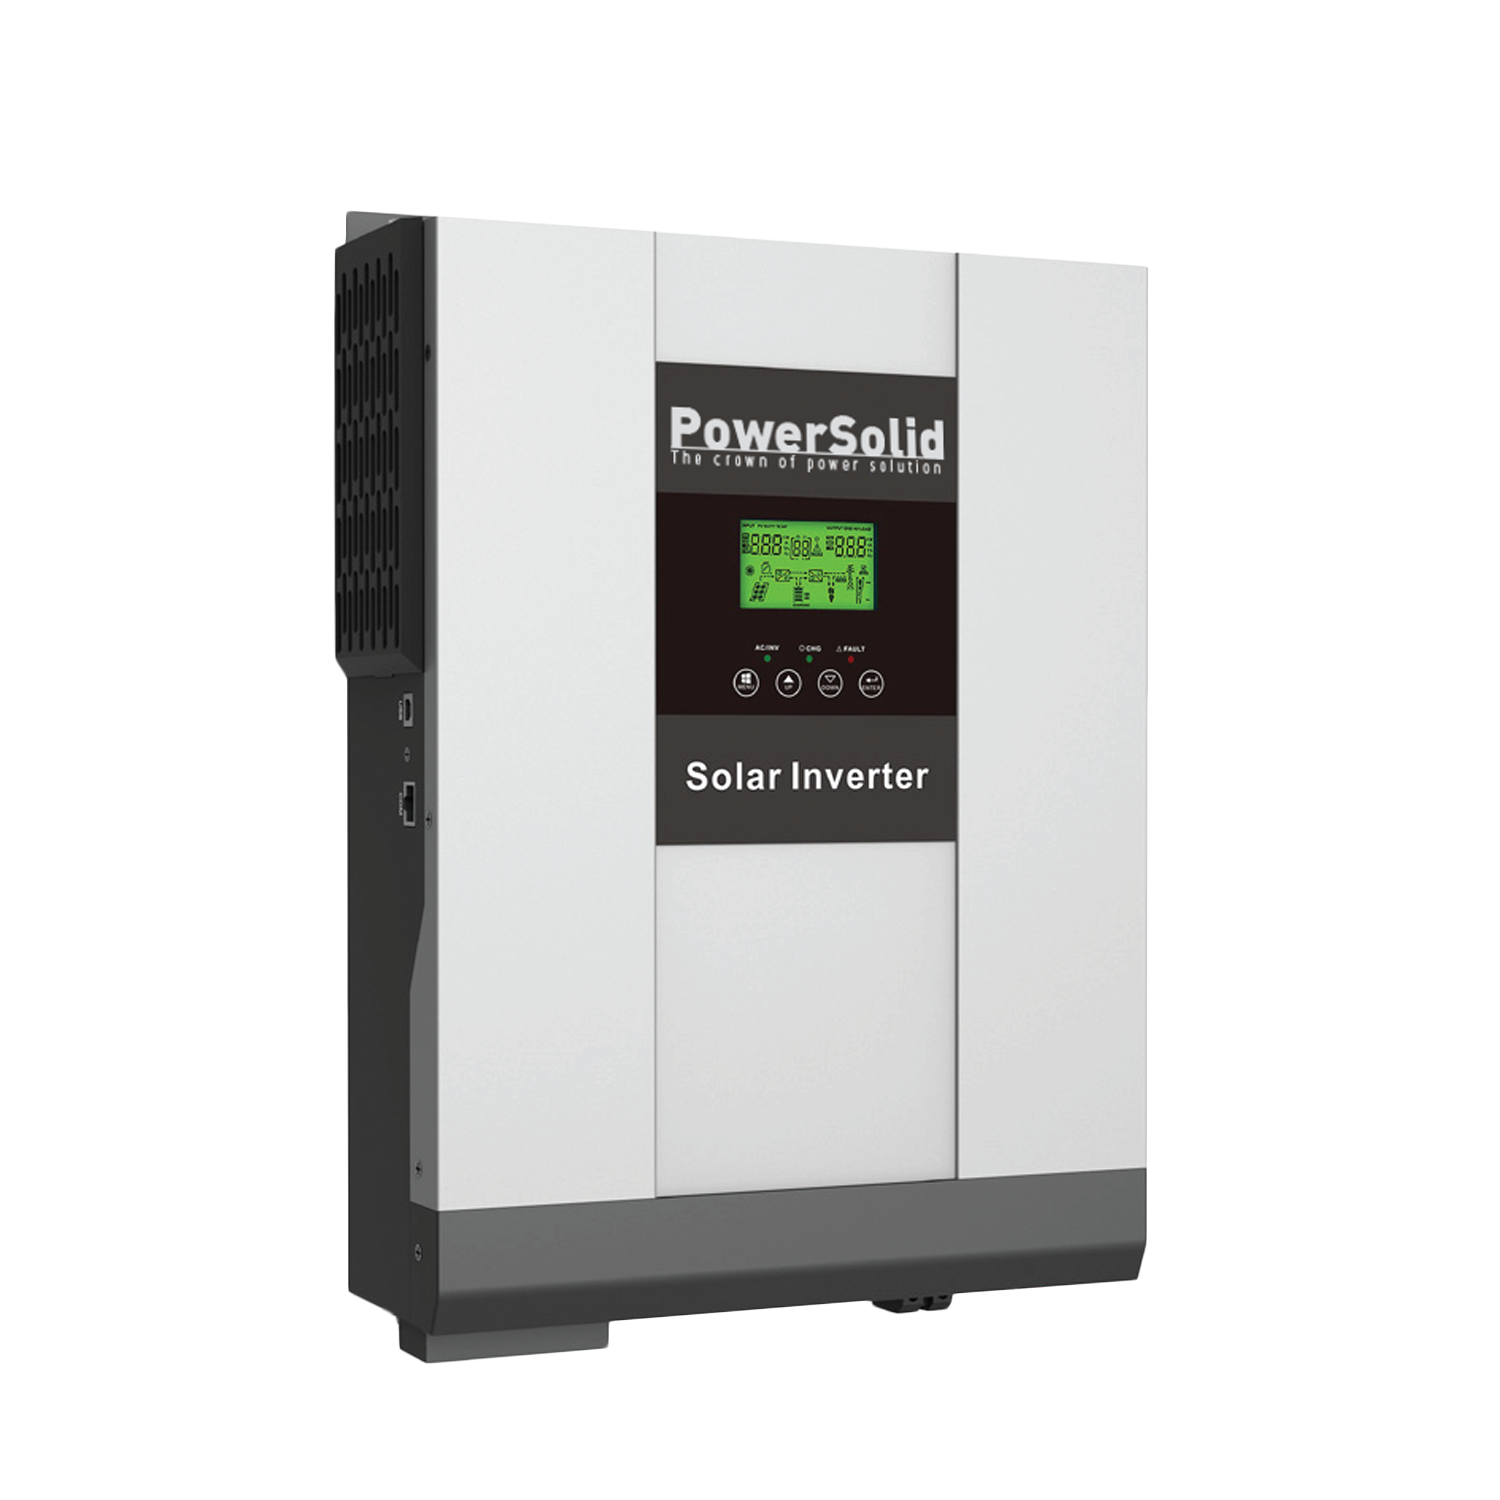 PowerSolid Inverter PSi3000W#24VPVM High Frequency Off Grid Solar Inverter